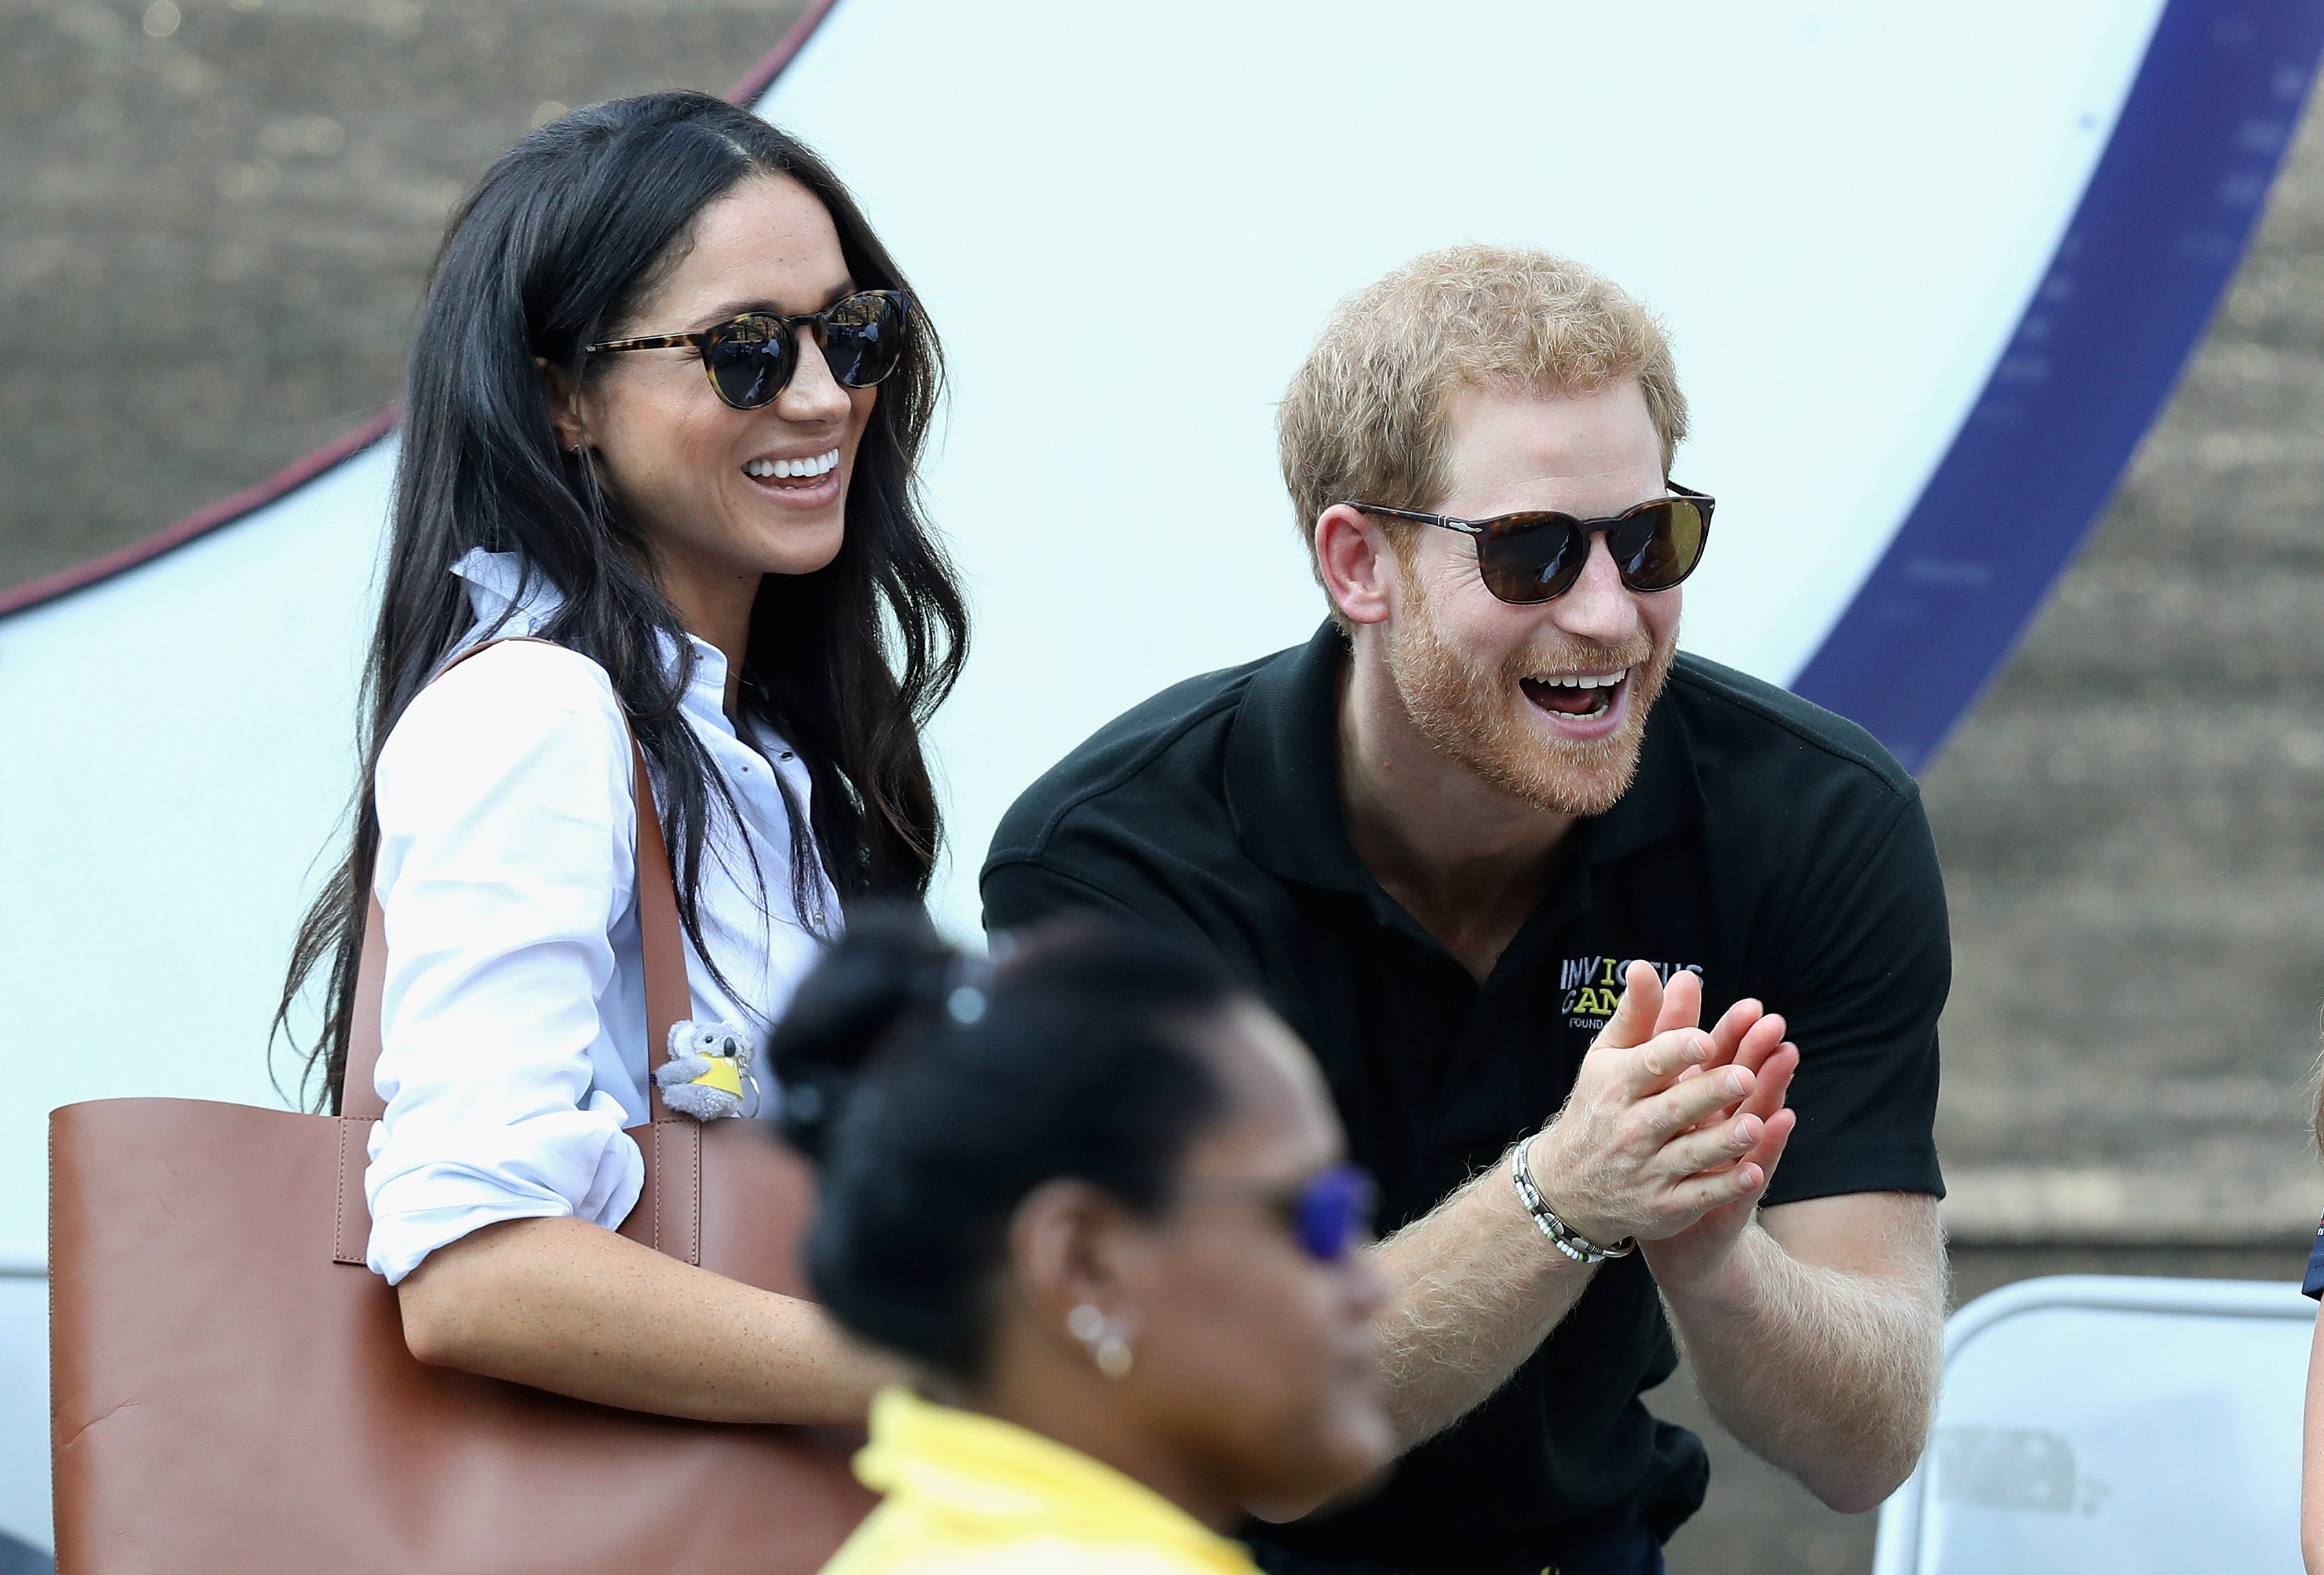 Prince Harry and Meghan Markle attend a Wheelchair Tennis match during the Invictus Games 2017. | Source: Getty Images